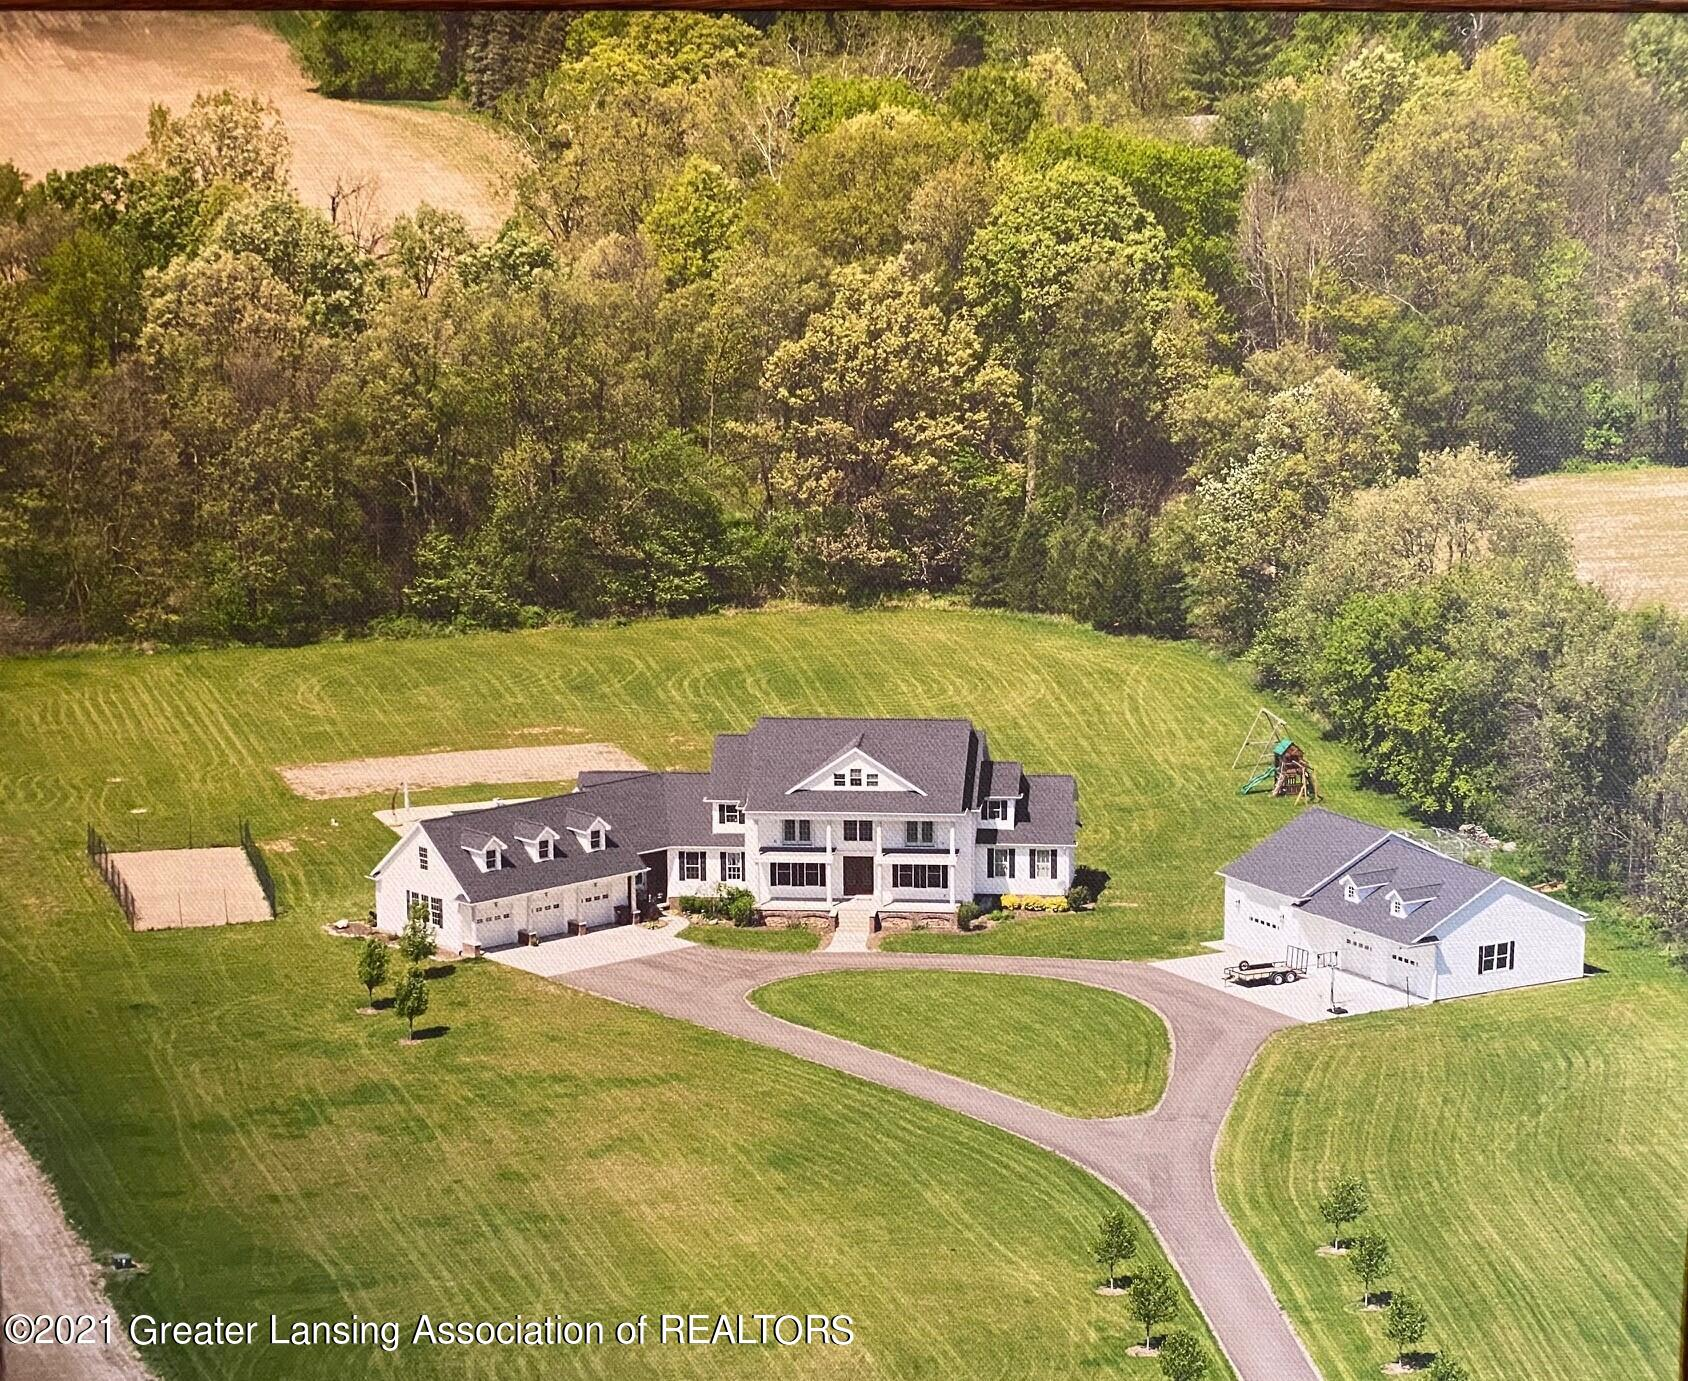 2787 Moyer Rd - House and property view - 1